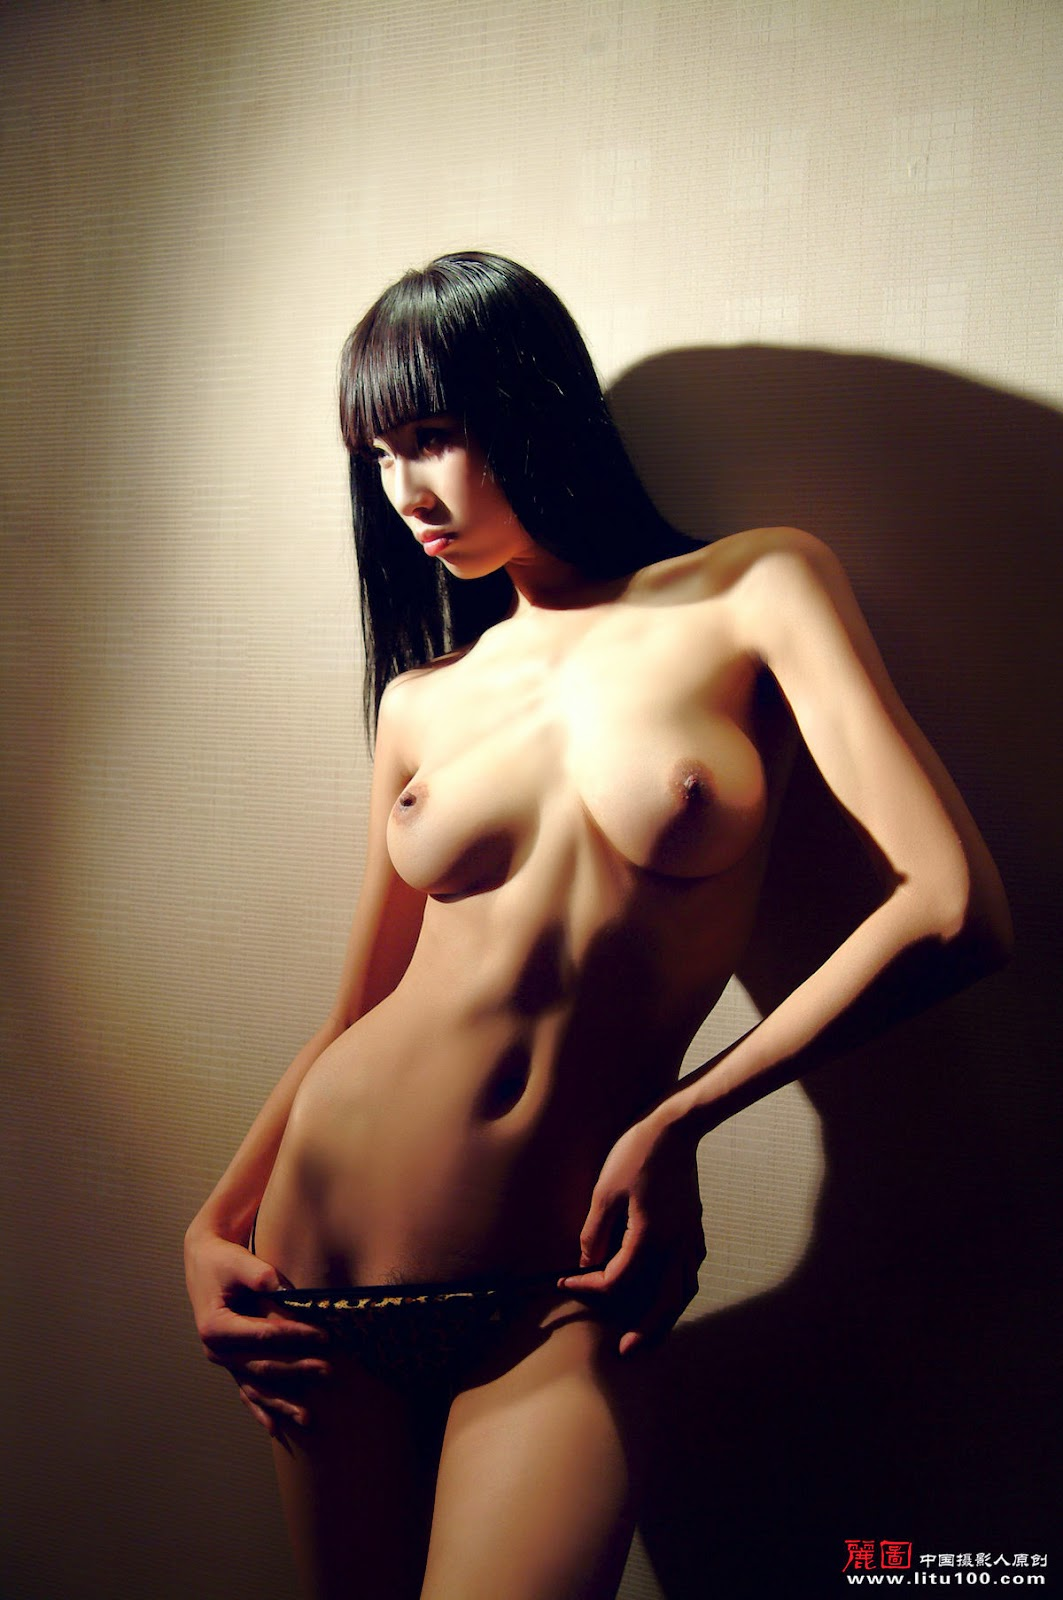 chinese galleries Nude models